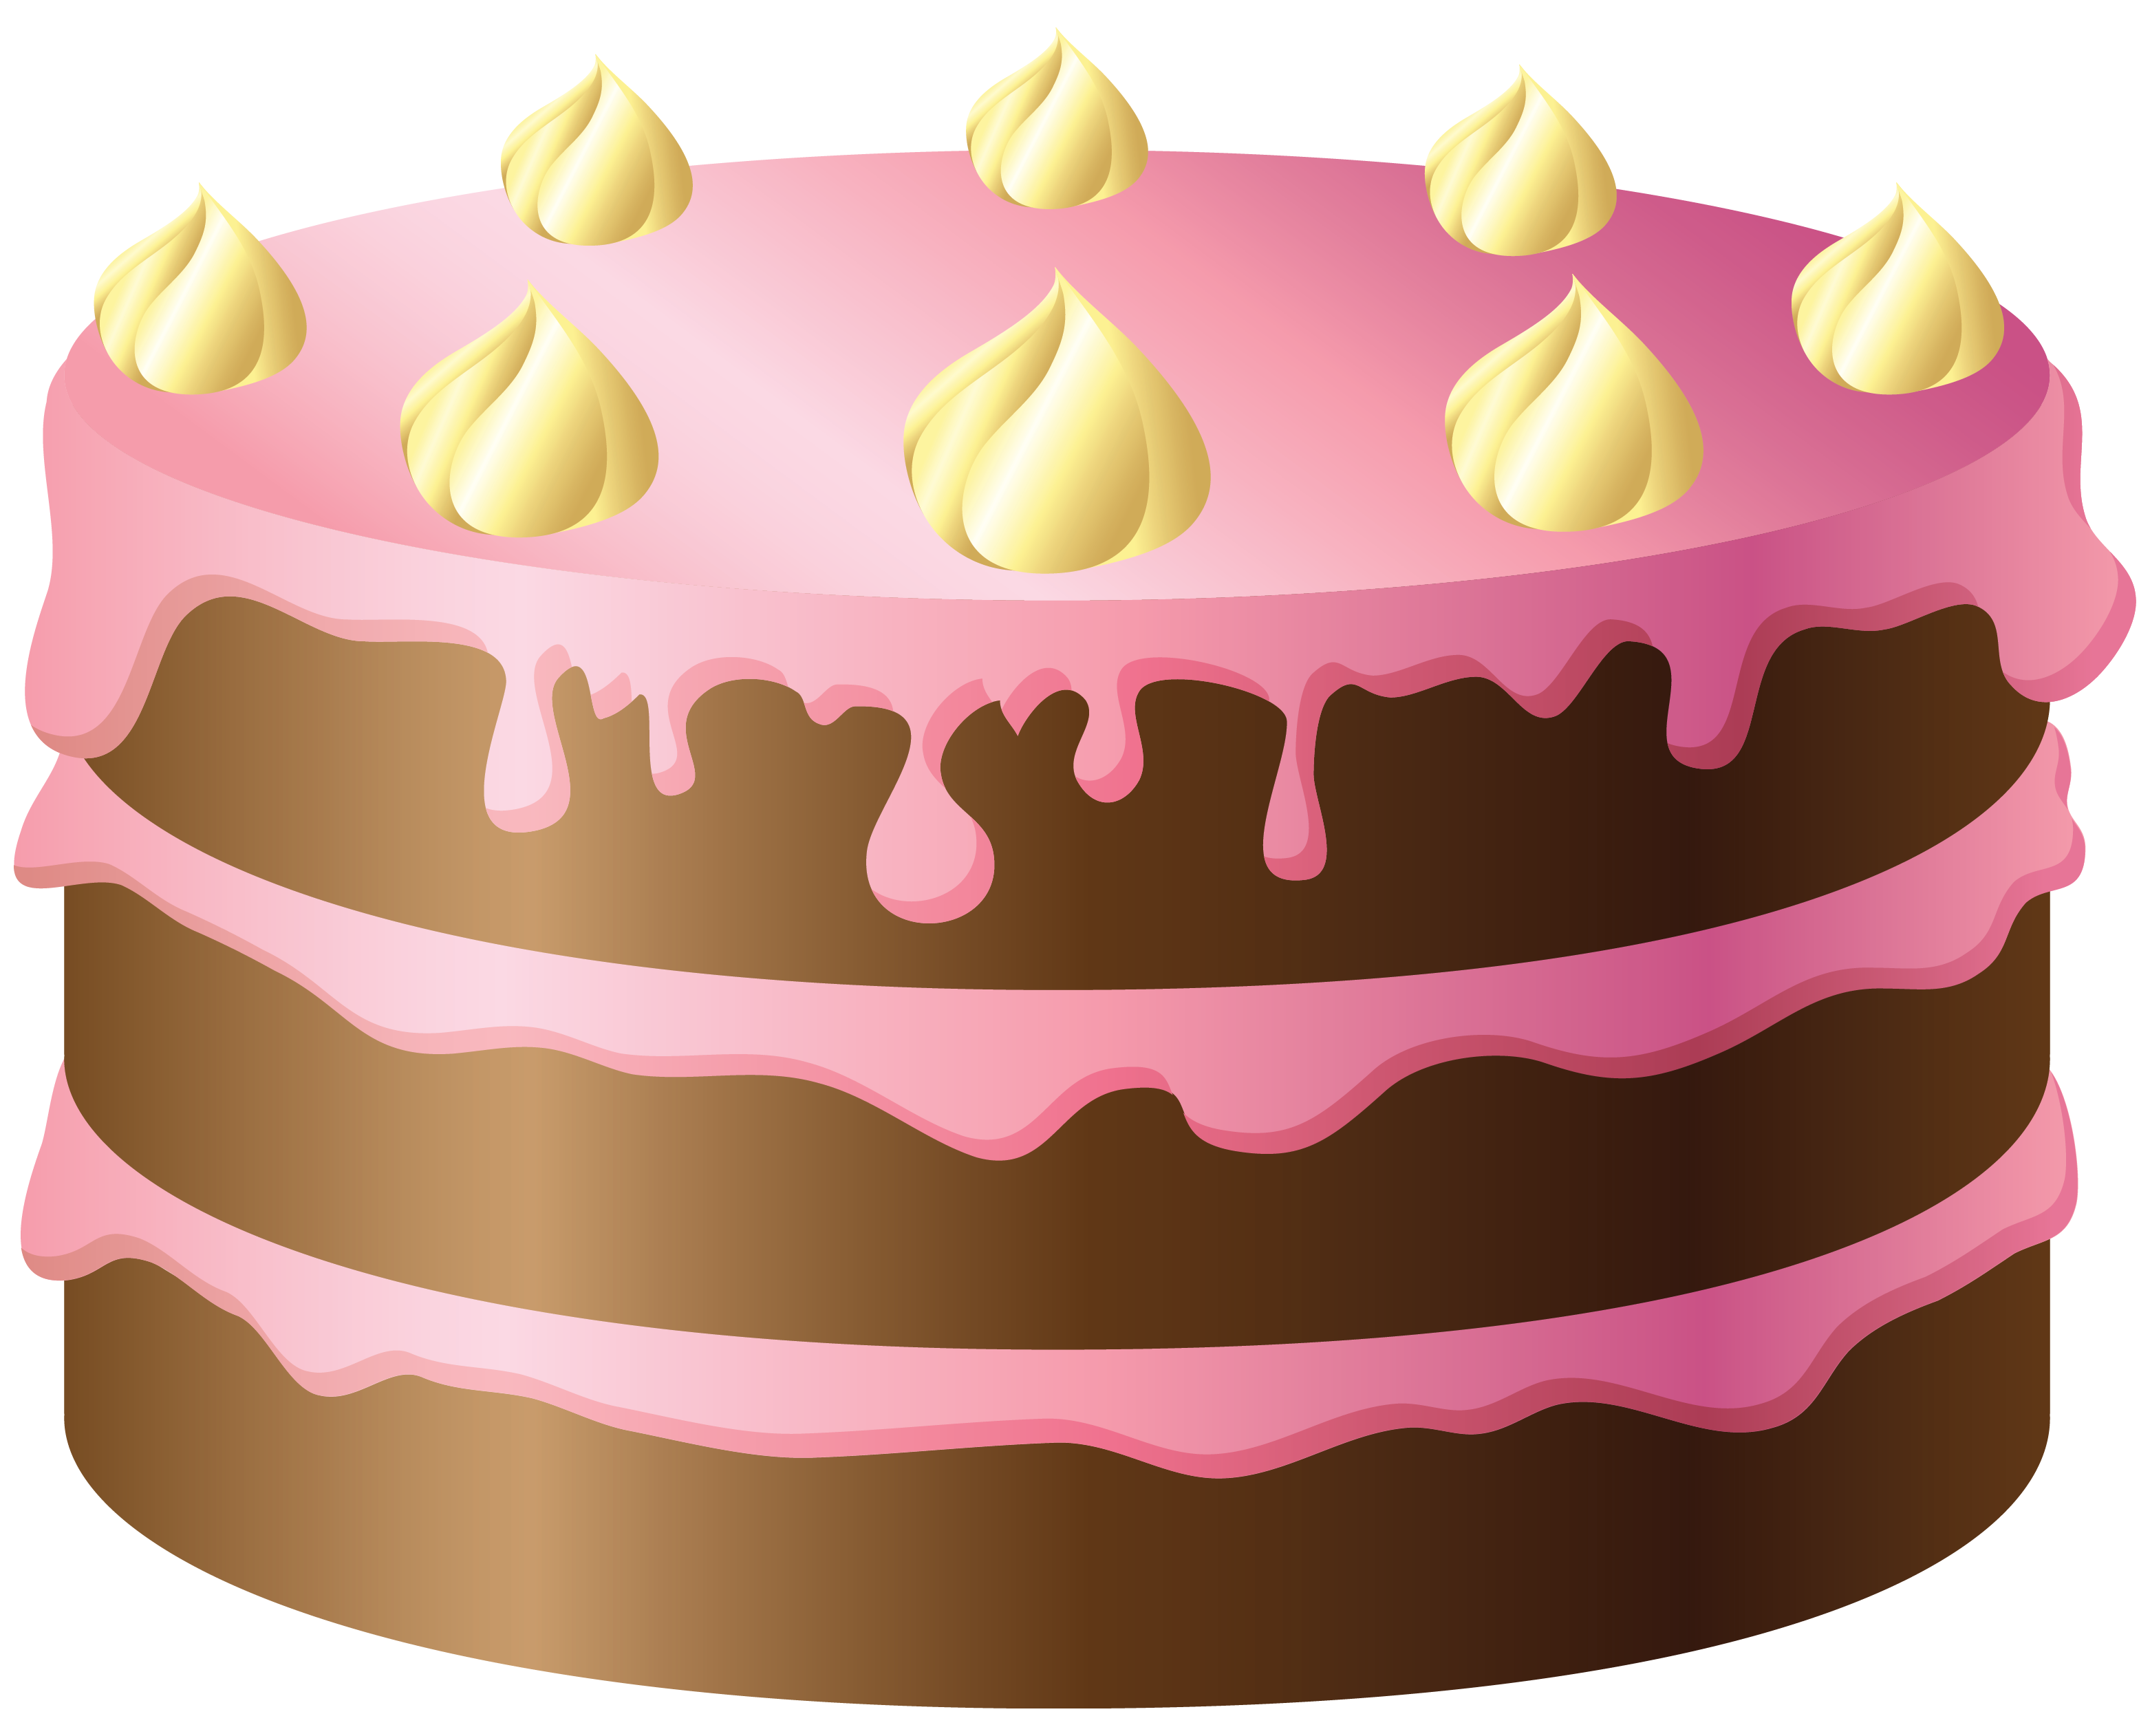 Cake clipart #6, Download drawings